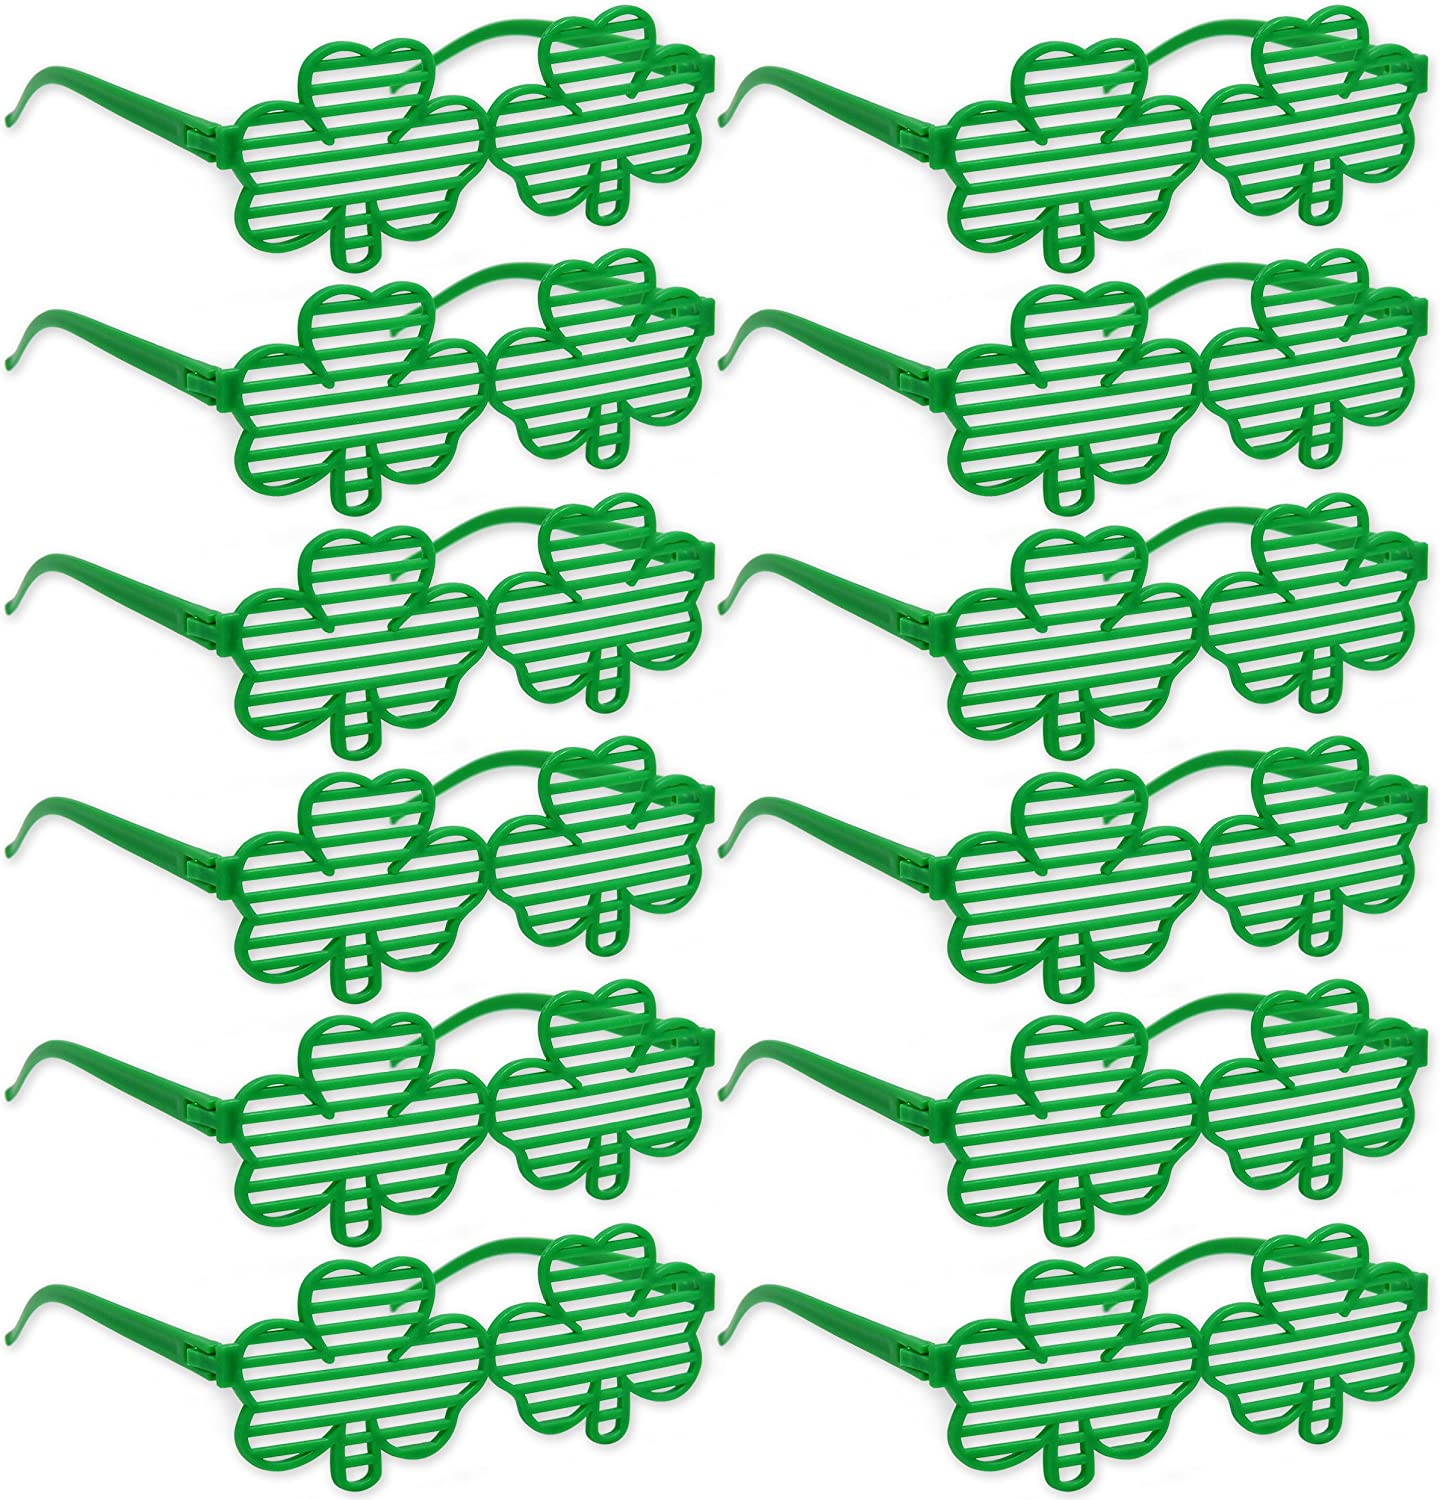 108 St Patricks Day Party Favors Supplies Set Includes 12 Shamrock Sunglasses 12 Shamrock Necklaces 12 Shamrock Bracelets and 72 Saint Patrick Temporary Tattoos Irish Green Supplies Accessories Toys